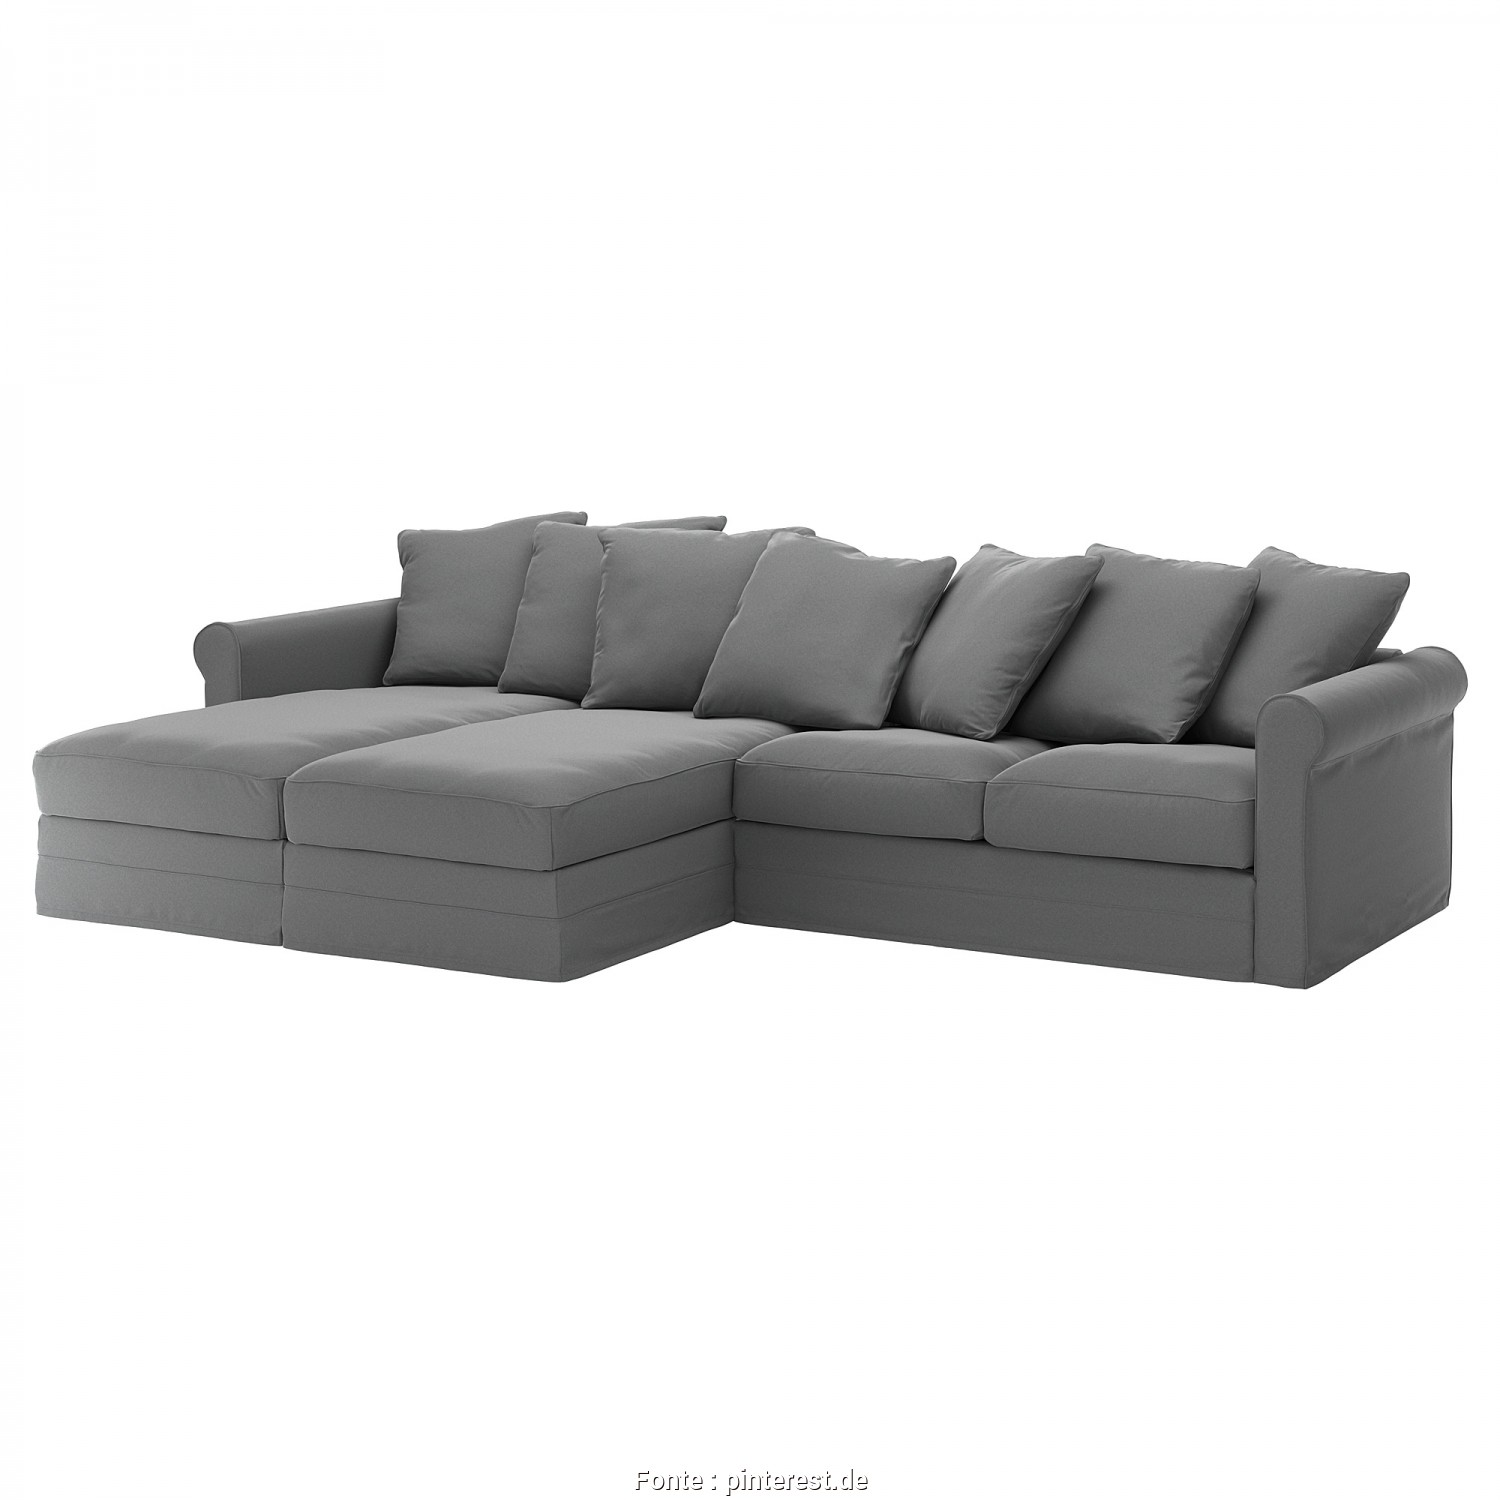 Ikea Backabro Kissen, Grande GRÖNLID Sectional, 4-Seat, With Chaise, Inseros White